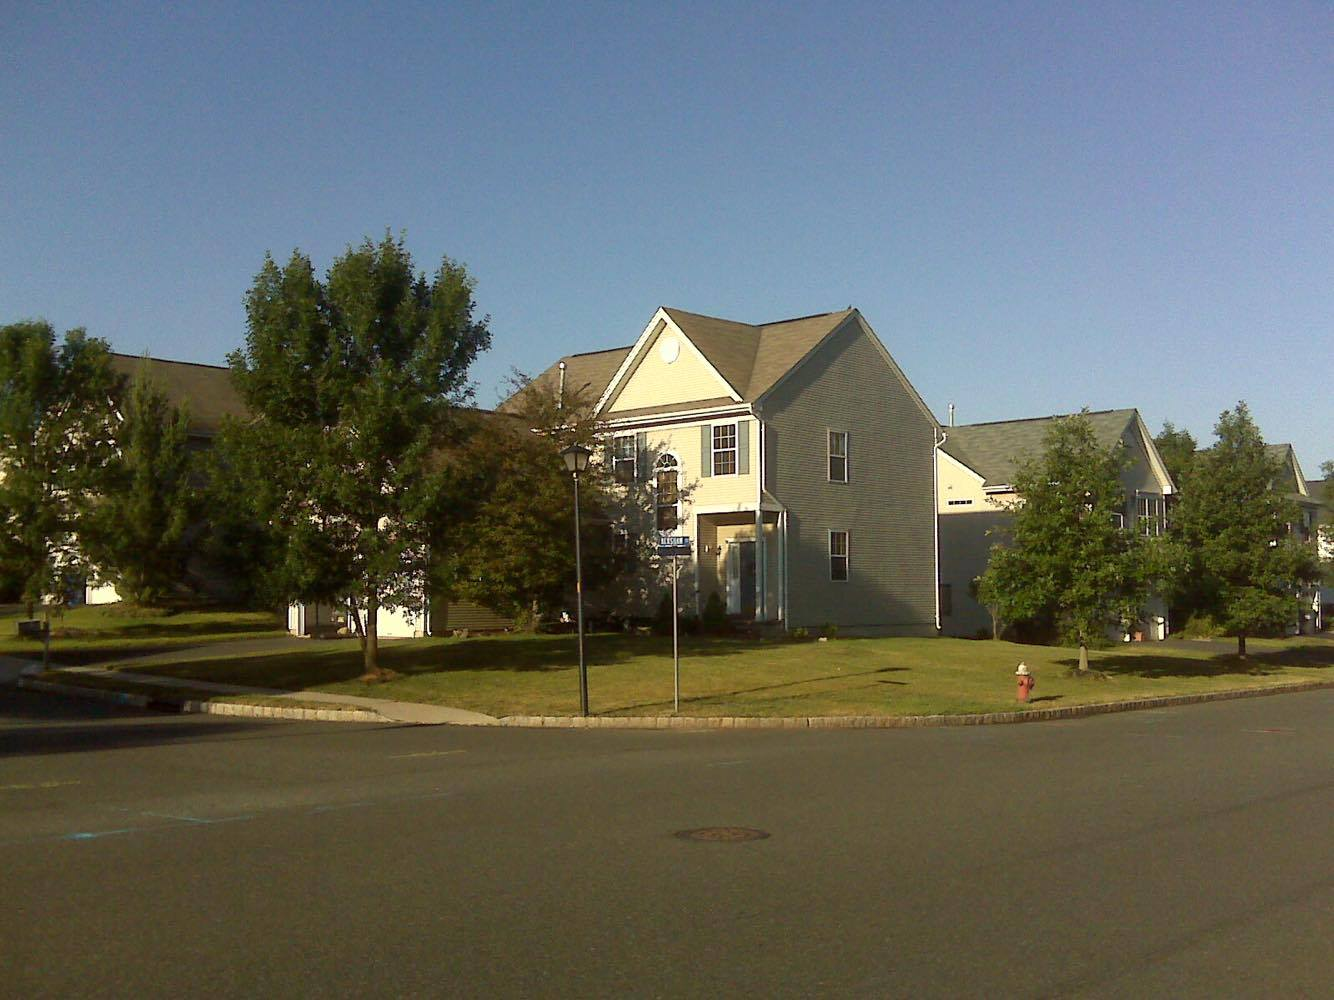 The suburbs of the Milltown-Vanderveer section of Bridgewater are attractive to workers with families who want a rural life while having easy access to urban areas. Families that wanted to live in close proximity to the city while bringing their children up in a comfortable, residential setting with a quality education system, for example, were attracted to the value for money offered by the Bridgewater township.